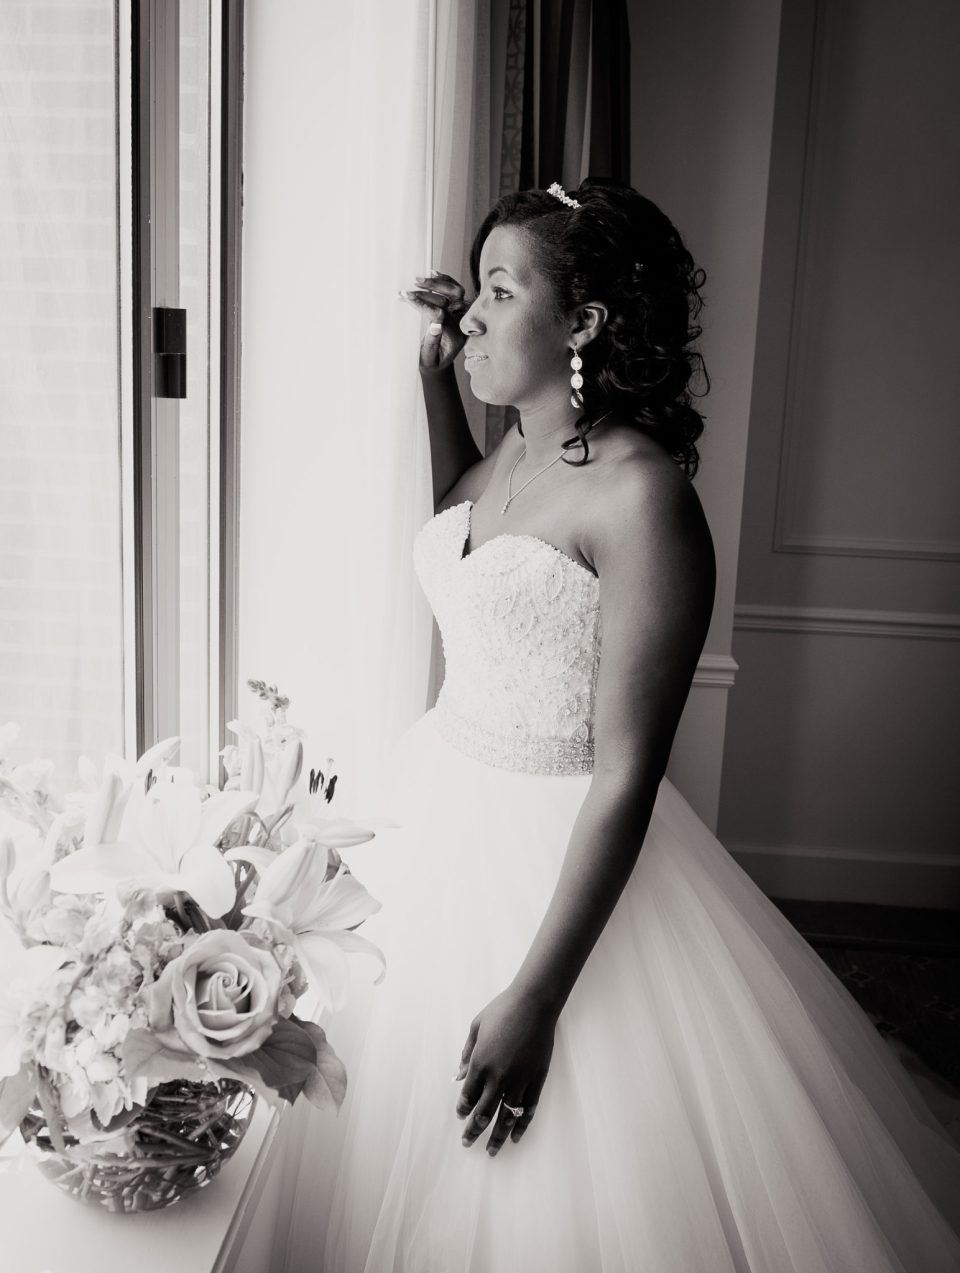 Getting-Dressed-66-of-73-960x1273 Classic Charleston Nuptials